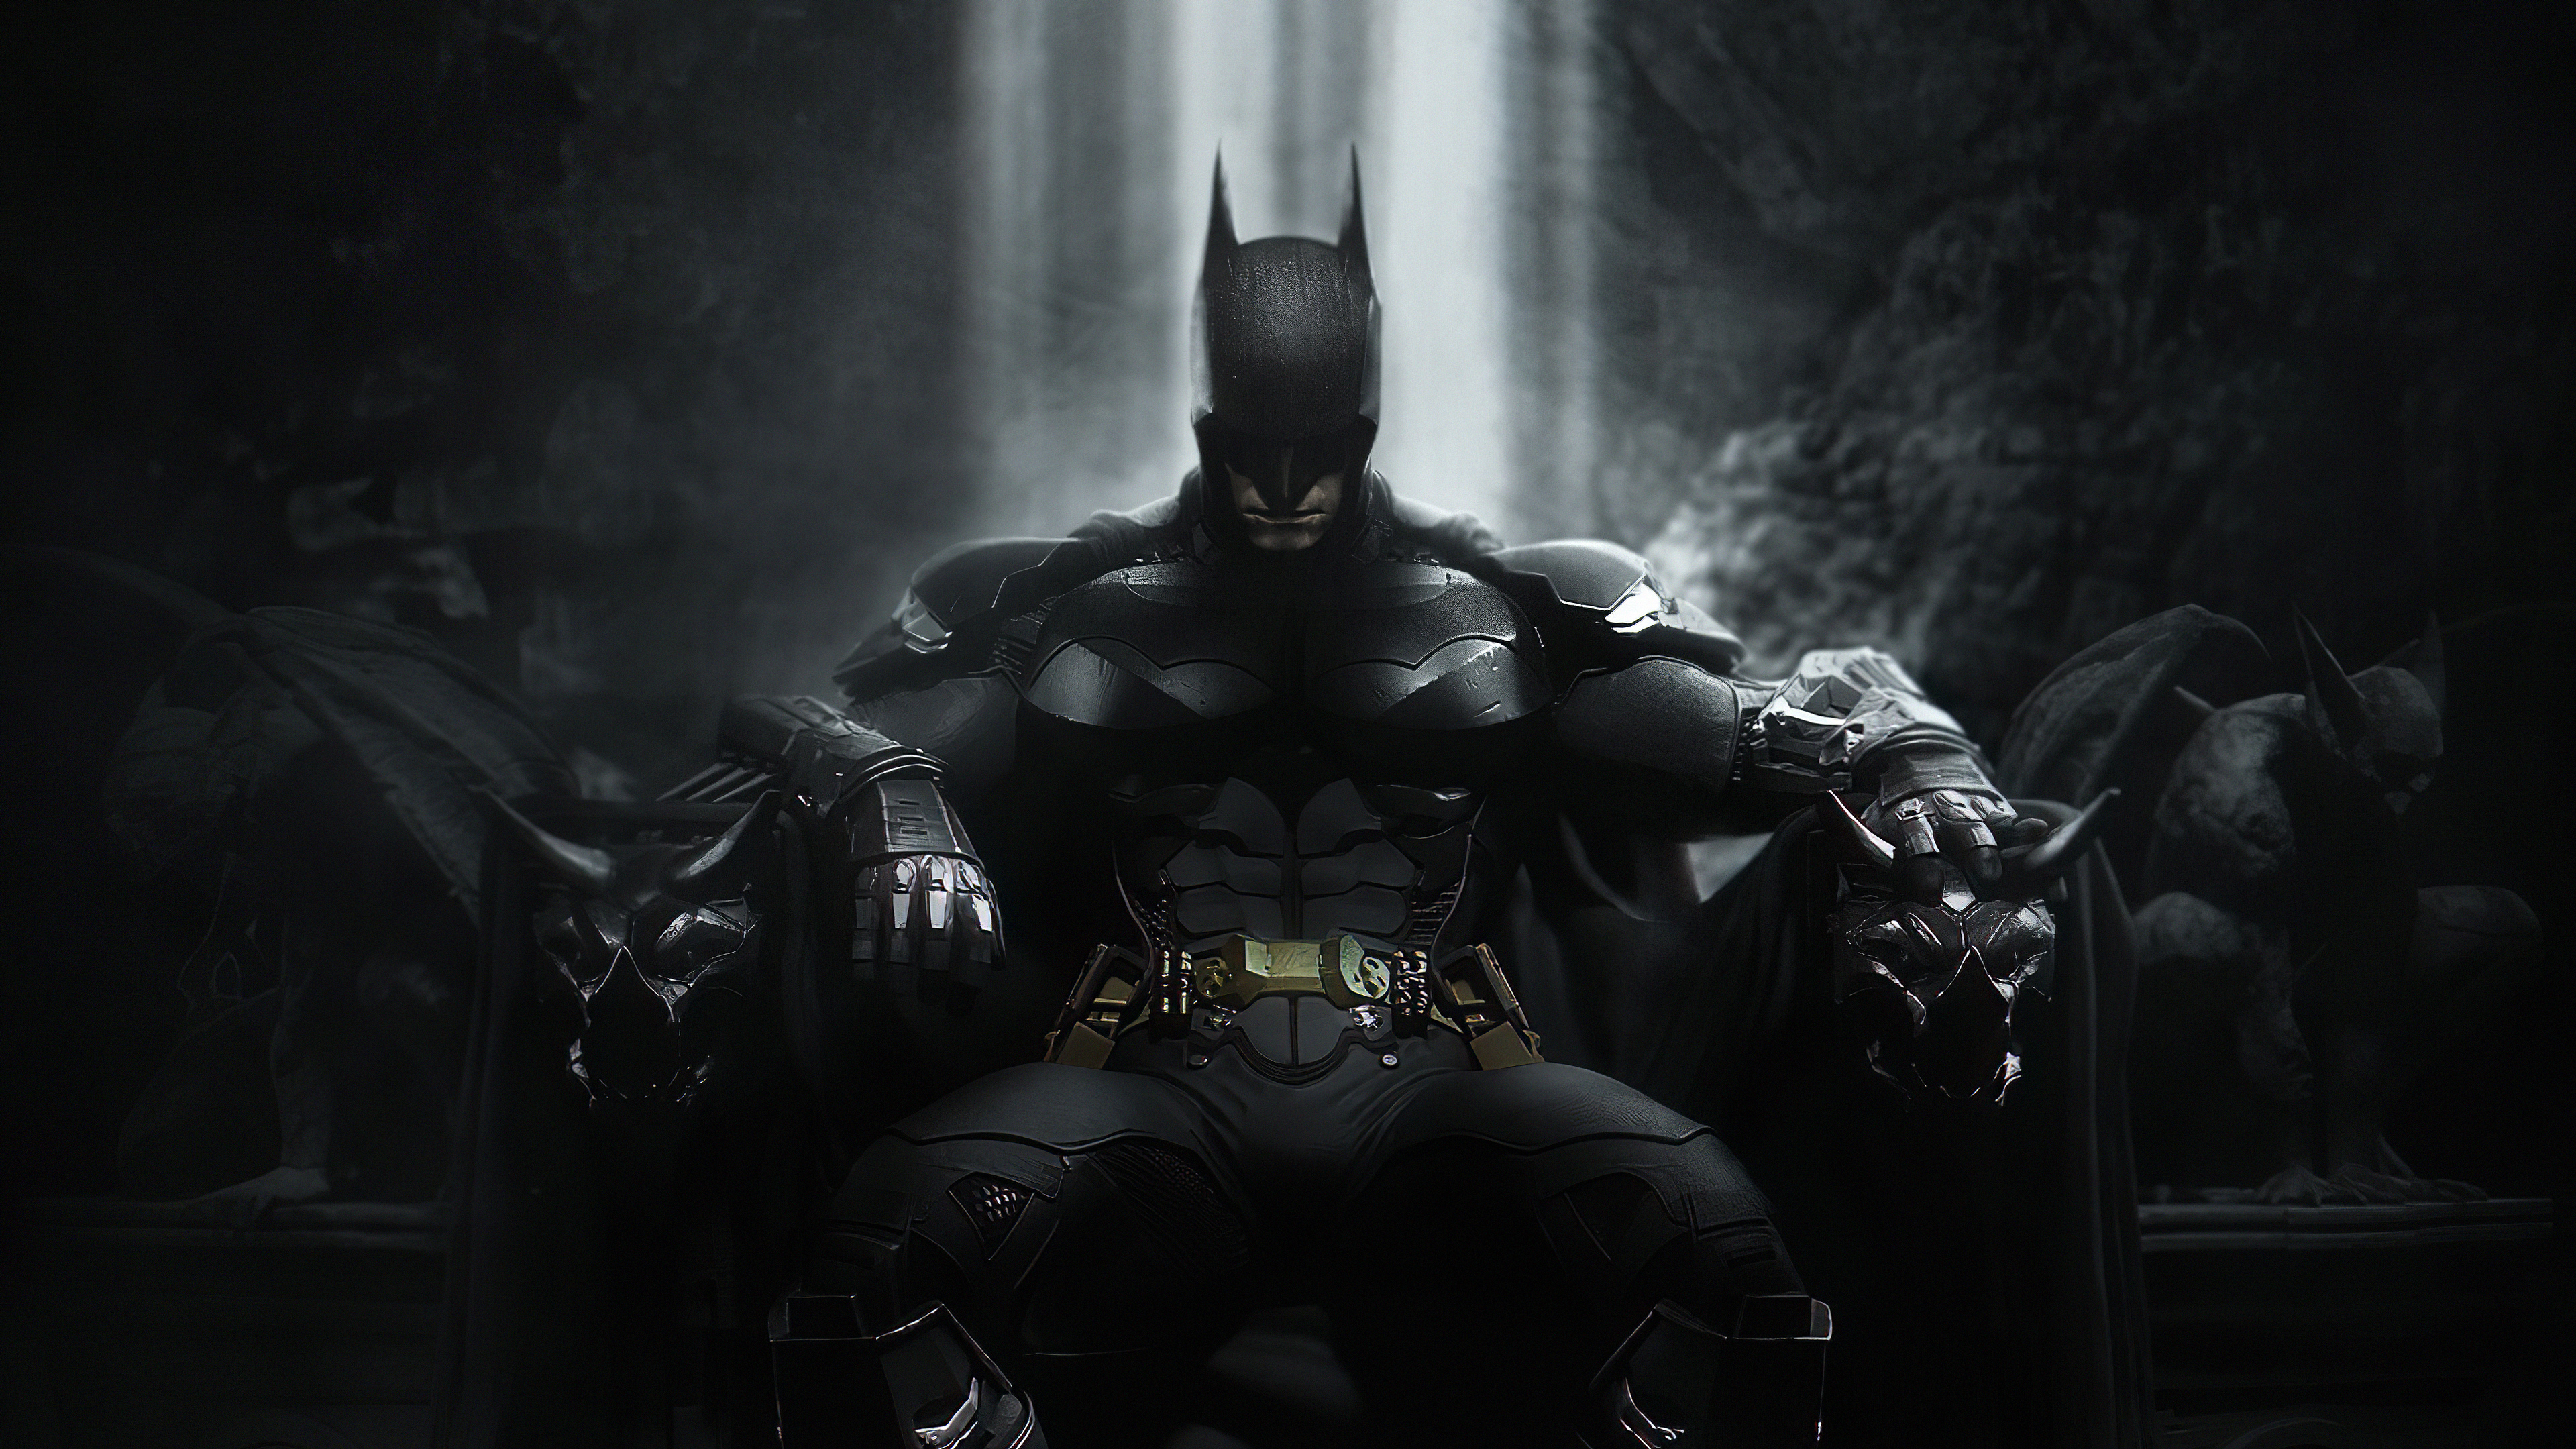 Wallpaper 4k Batman Throne 4k Wallpapers Artwork Wallpapers Batman Wallpapers Deviantart Wallpapers Digital Art Wallpapers Hd Wallpapers Superheroes Wallpapers